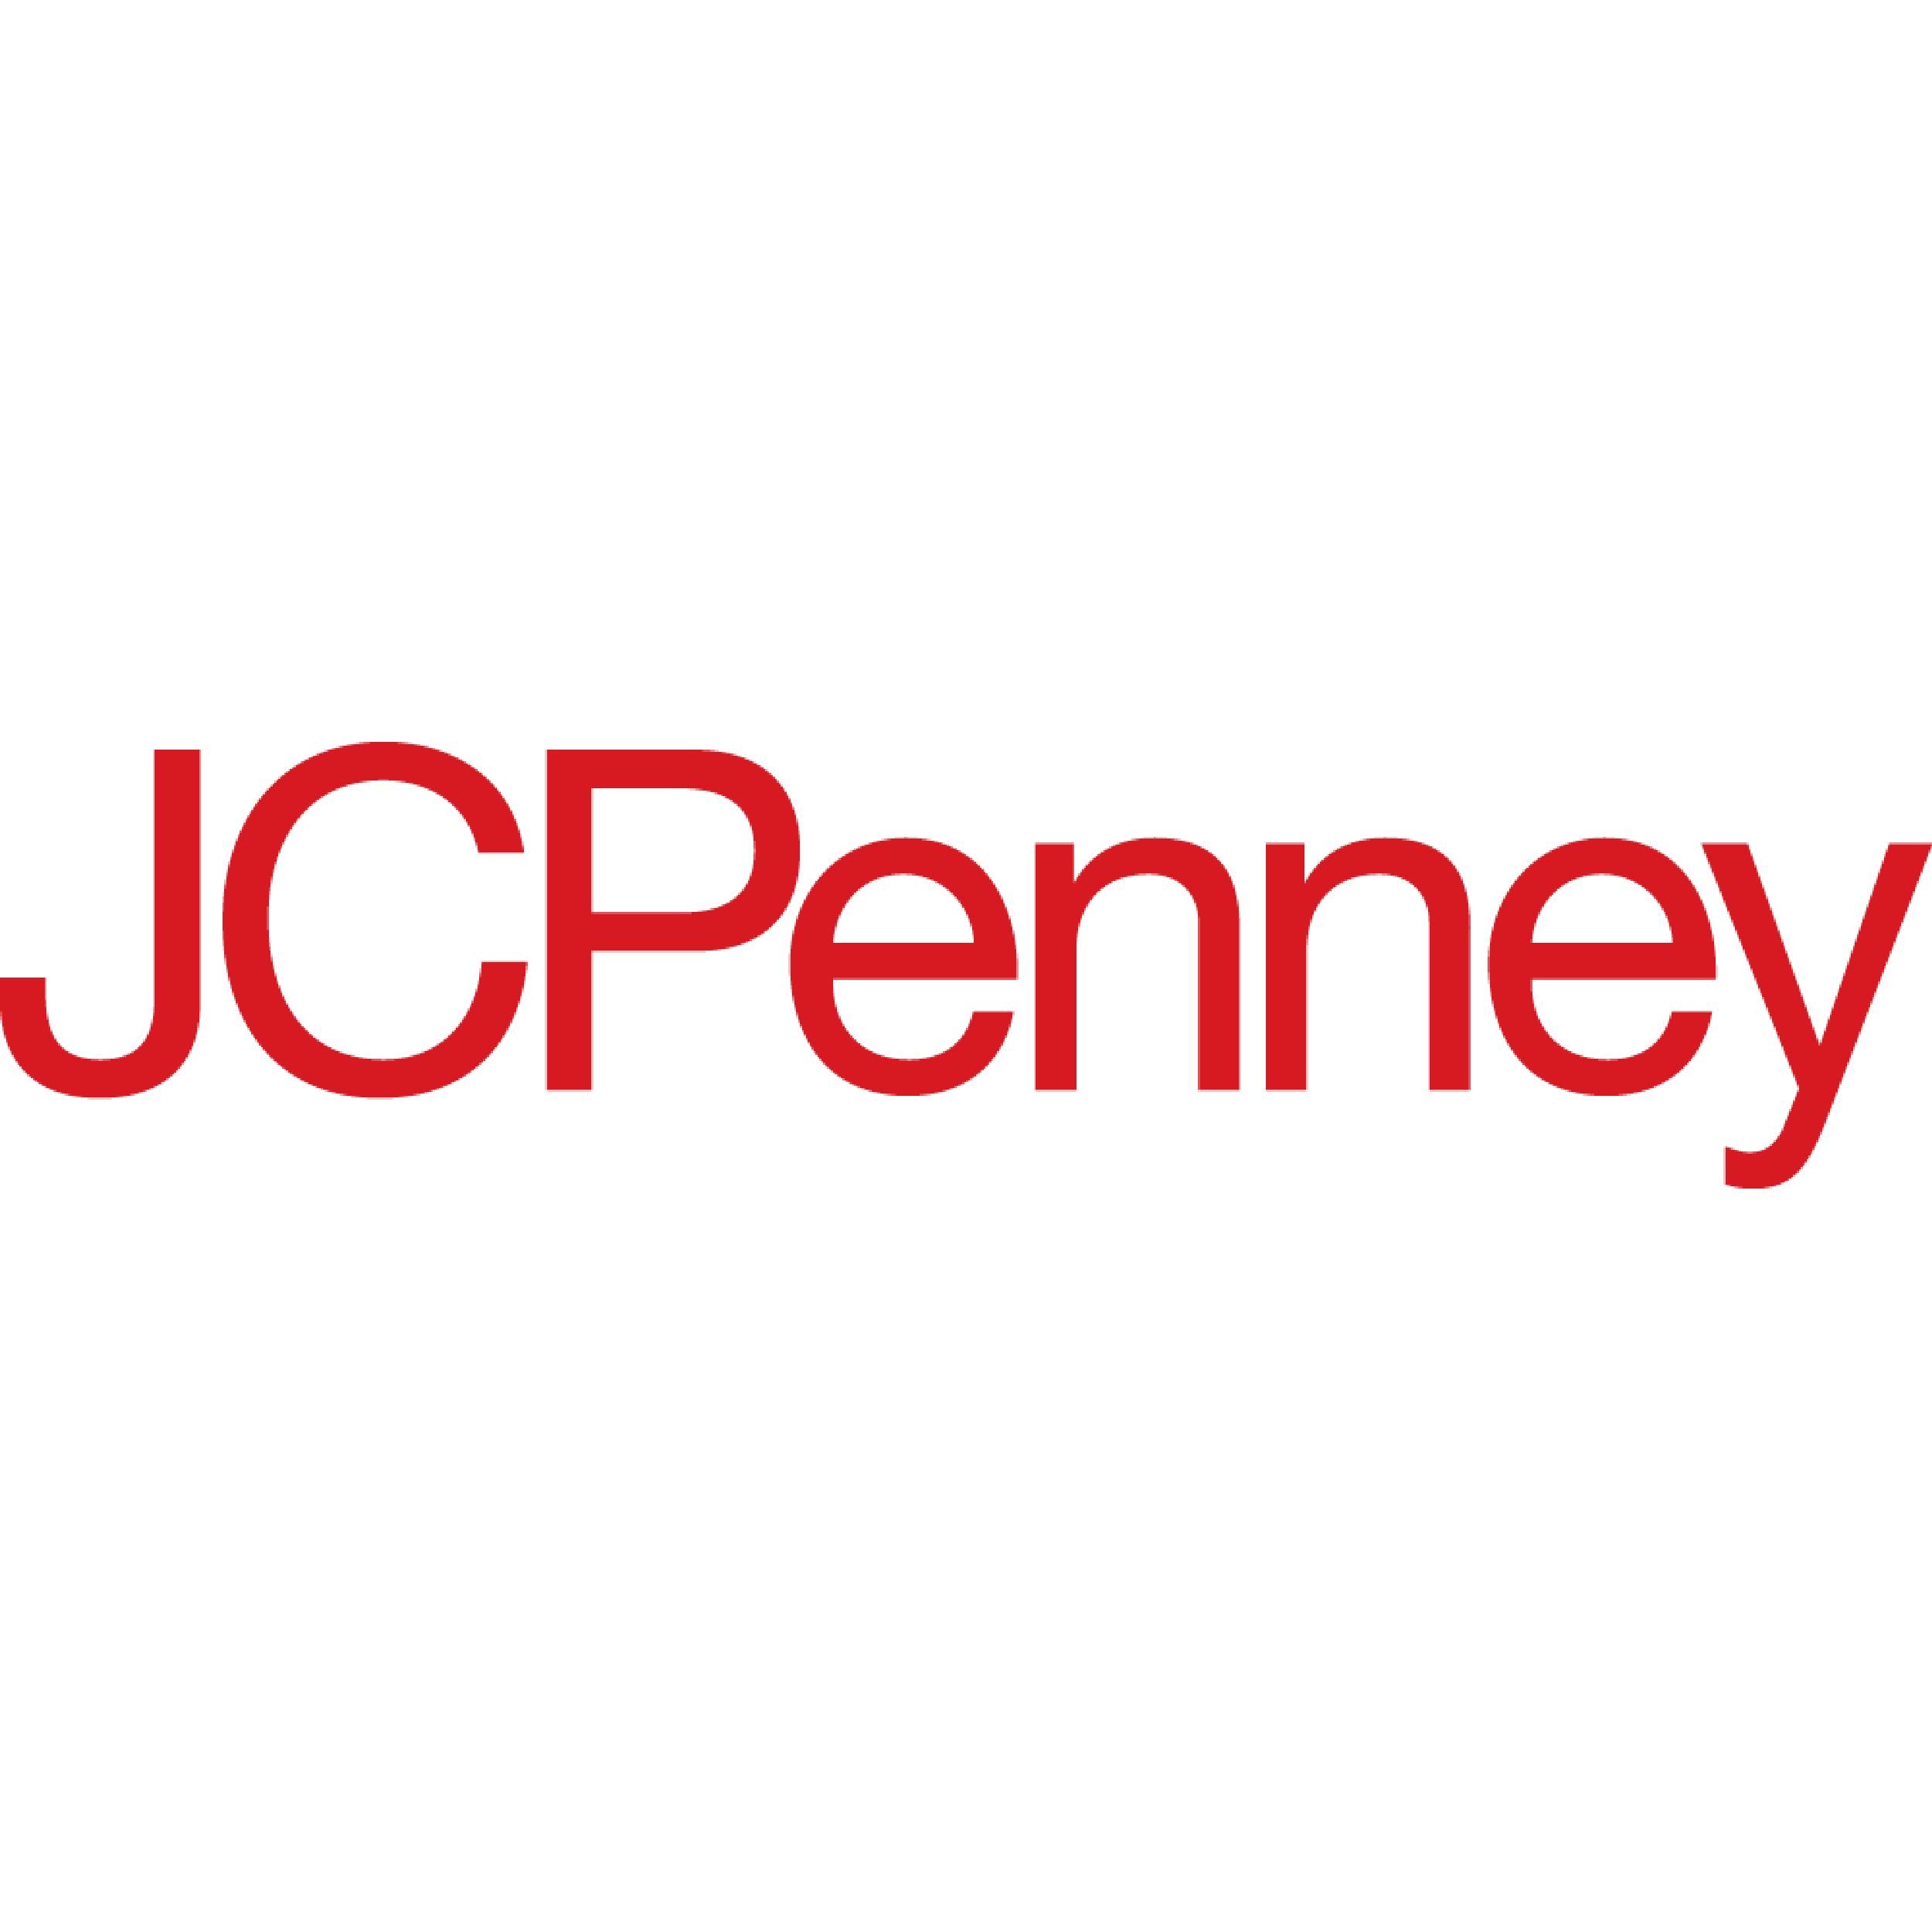 JCPenney - Hayward, CA - Department Stores